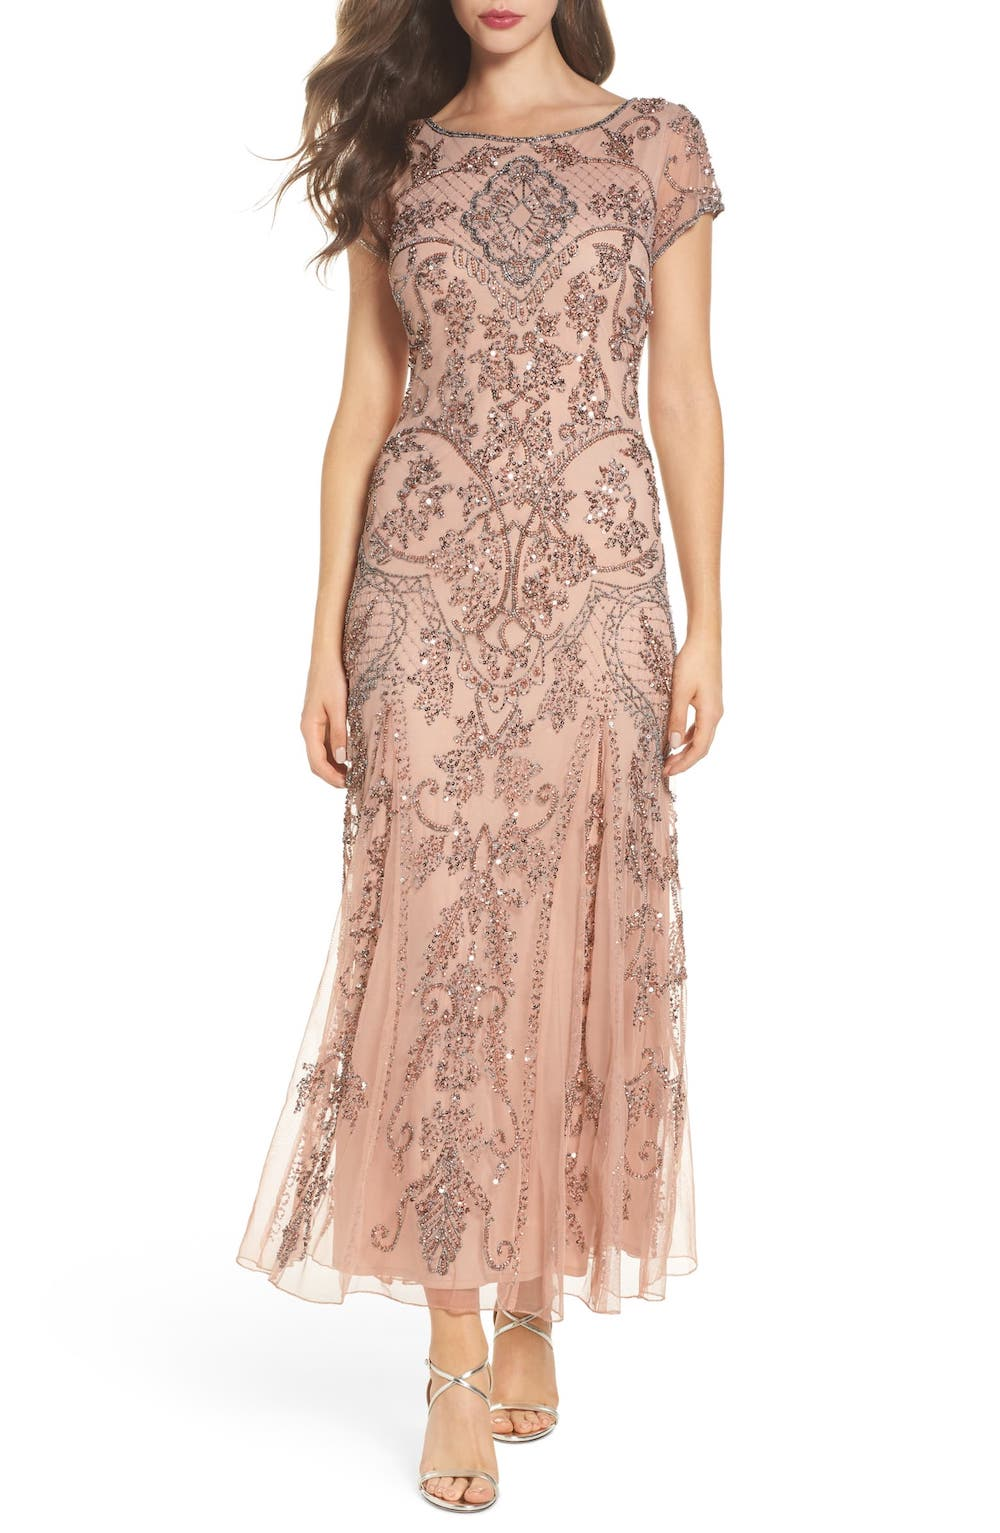 embellished mesh gown by Pisarro Nights